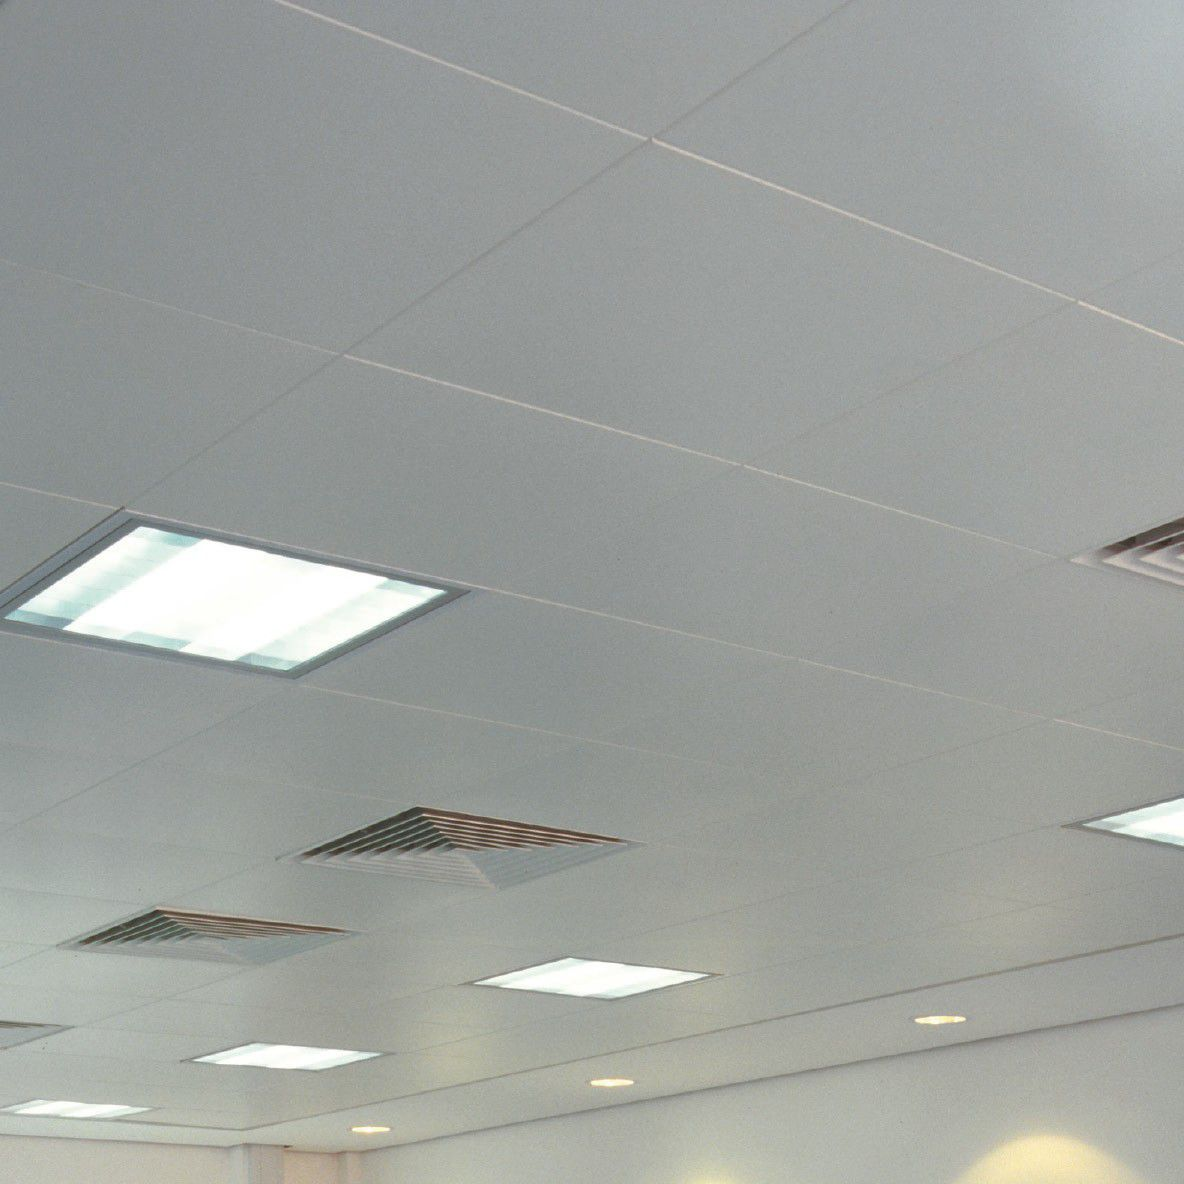 Suspended ceiling tiles perforated ceiling tiles square edge suspended ceiling tiles perforated ceiling tiles square edge tiles insulation giant dailygadgetfo Gallery